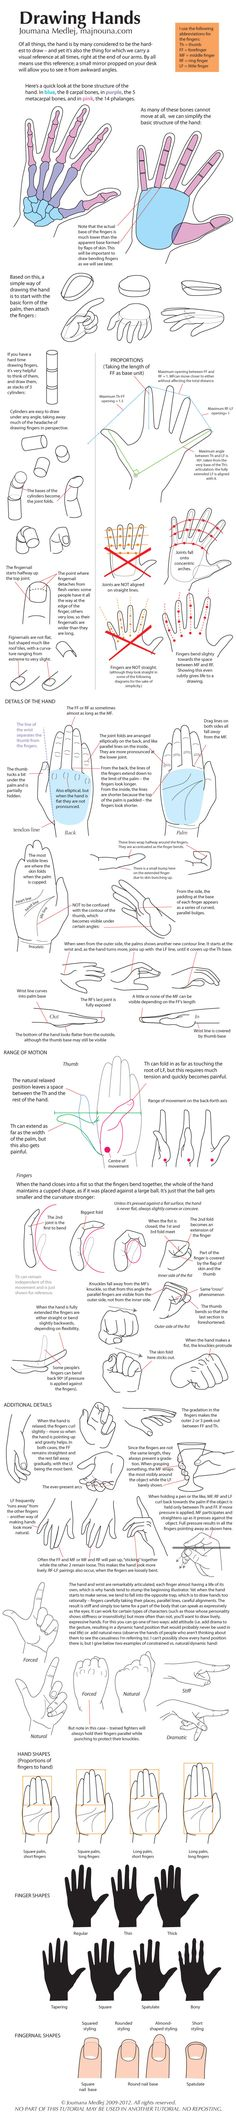 Drawing Hands by `majnouna on deviantART